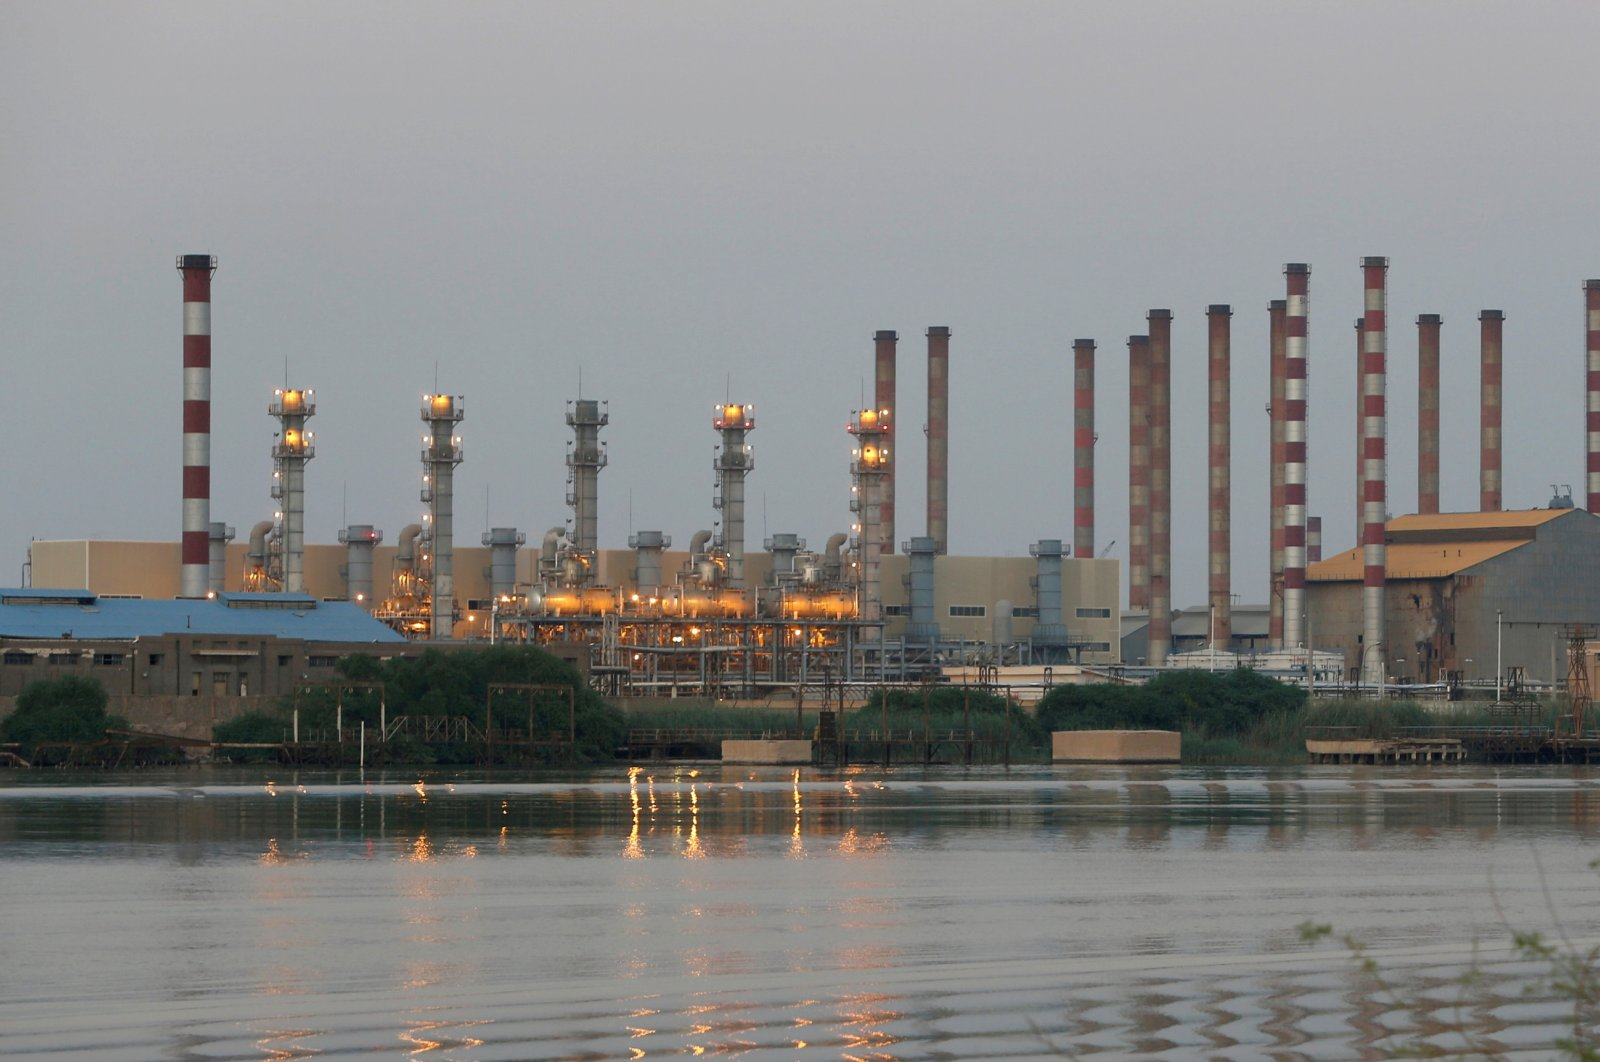 The Abadan oil refinery in southwest Iran pictured from the Iraqi side of Shatt al-Arab in Al-Faw south of Basra, Iraq, Sept. 21, 2019. (Reuters Photo)